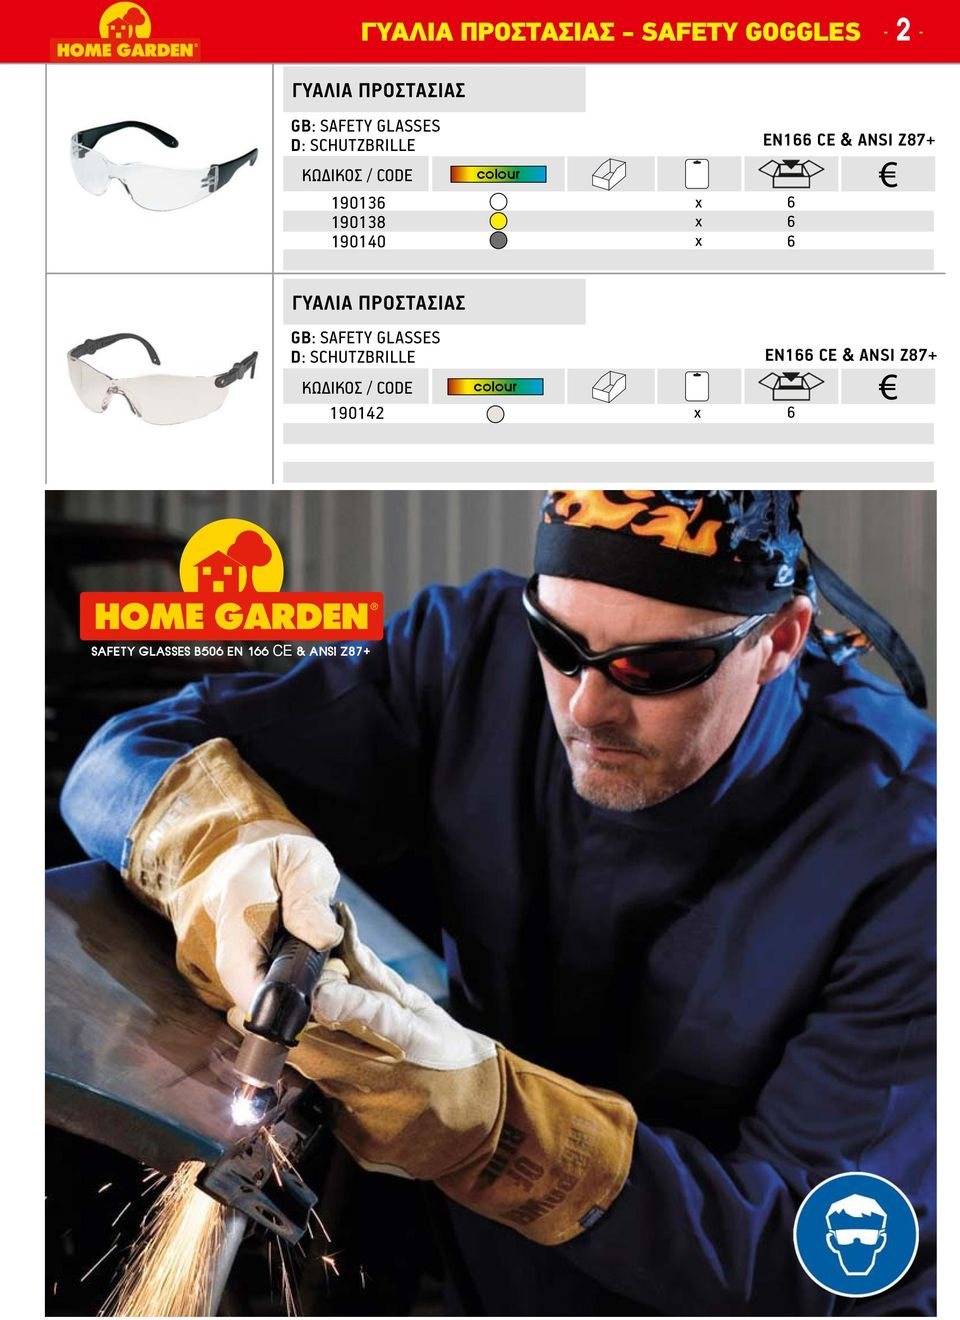 ΠΡΟΣΤΑΣΙΑΣ GB: SAFETY GLASSES SCHUTZBRILLE 190142